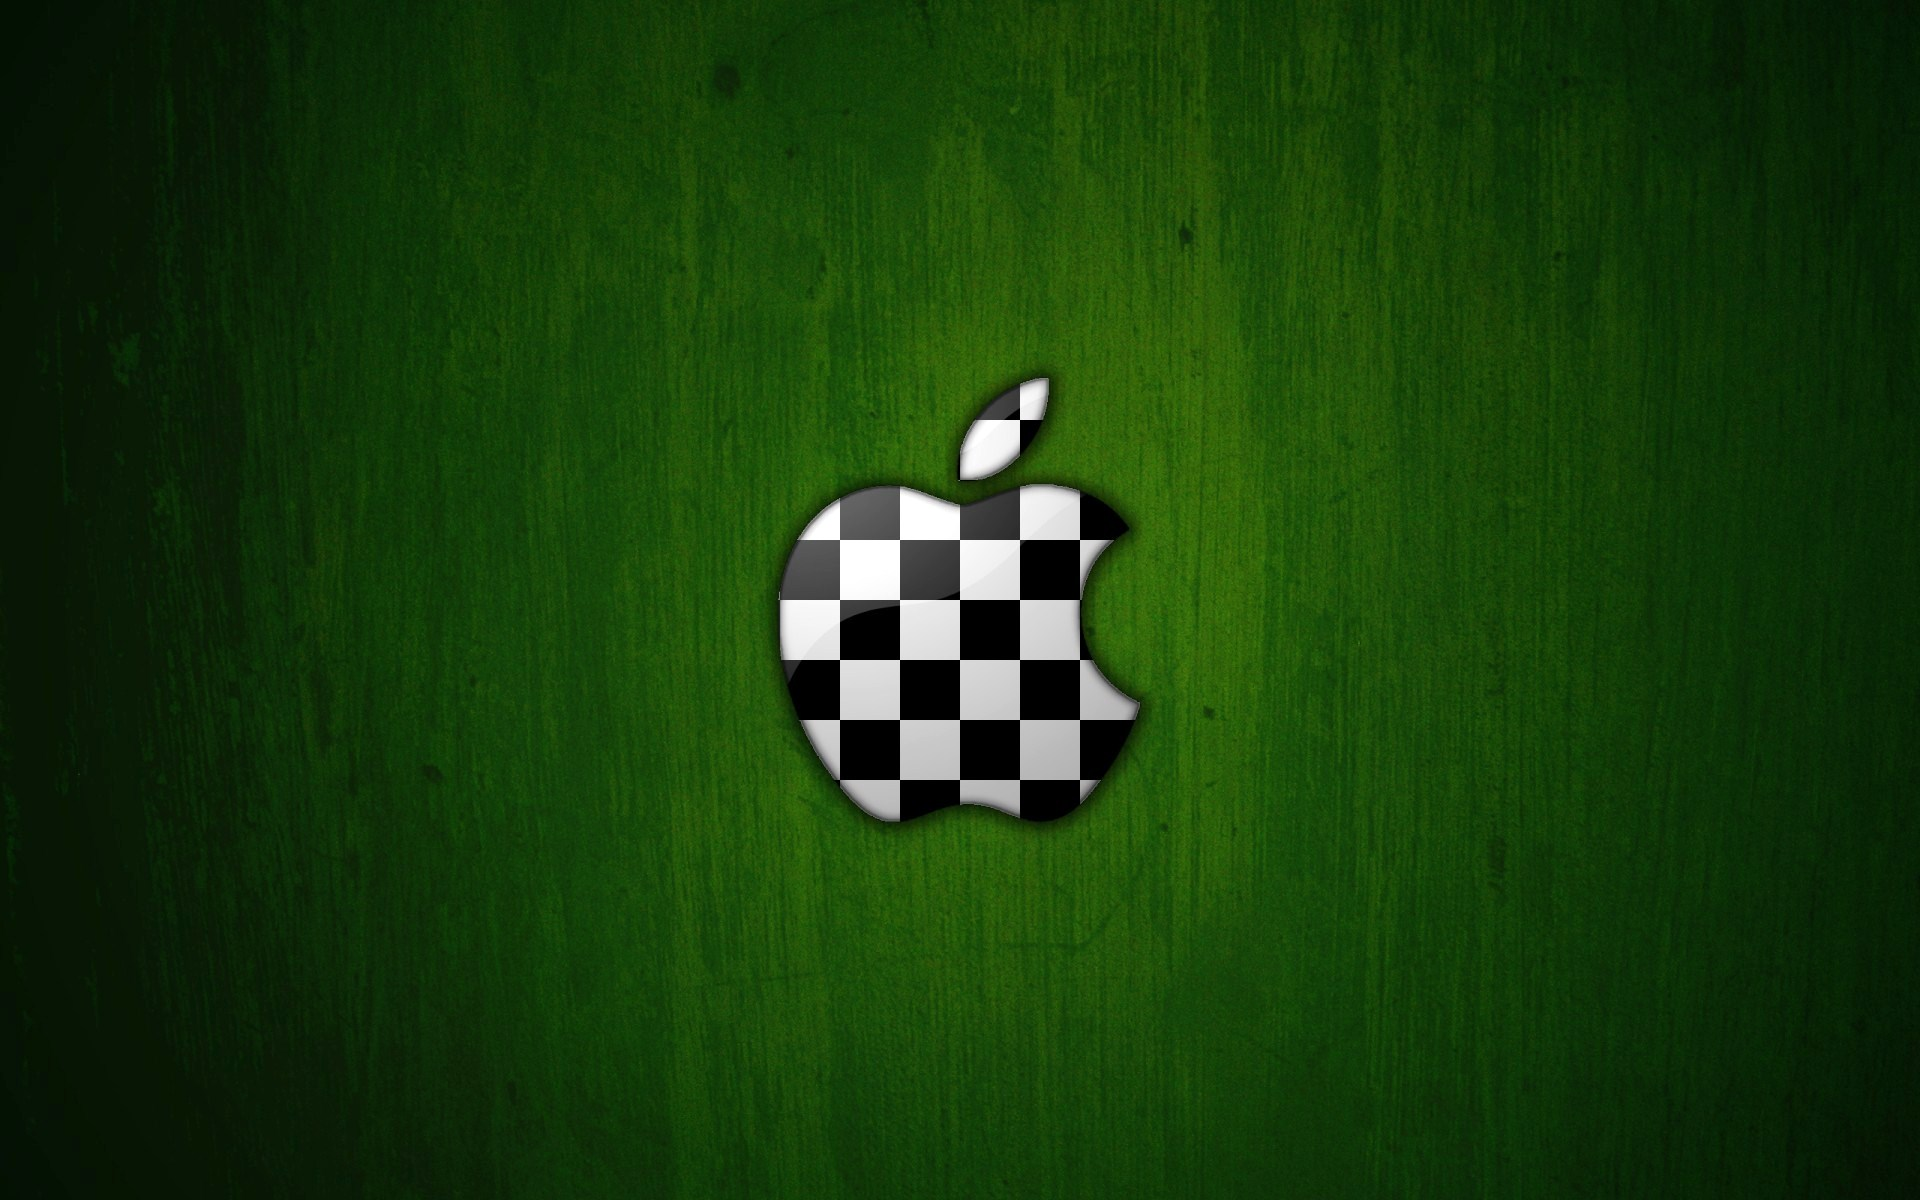 wallpapers 4k-hd Apple-alegorias.es (9)